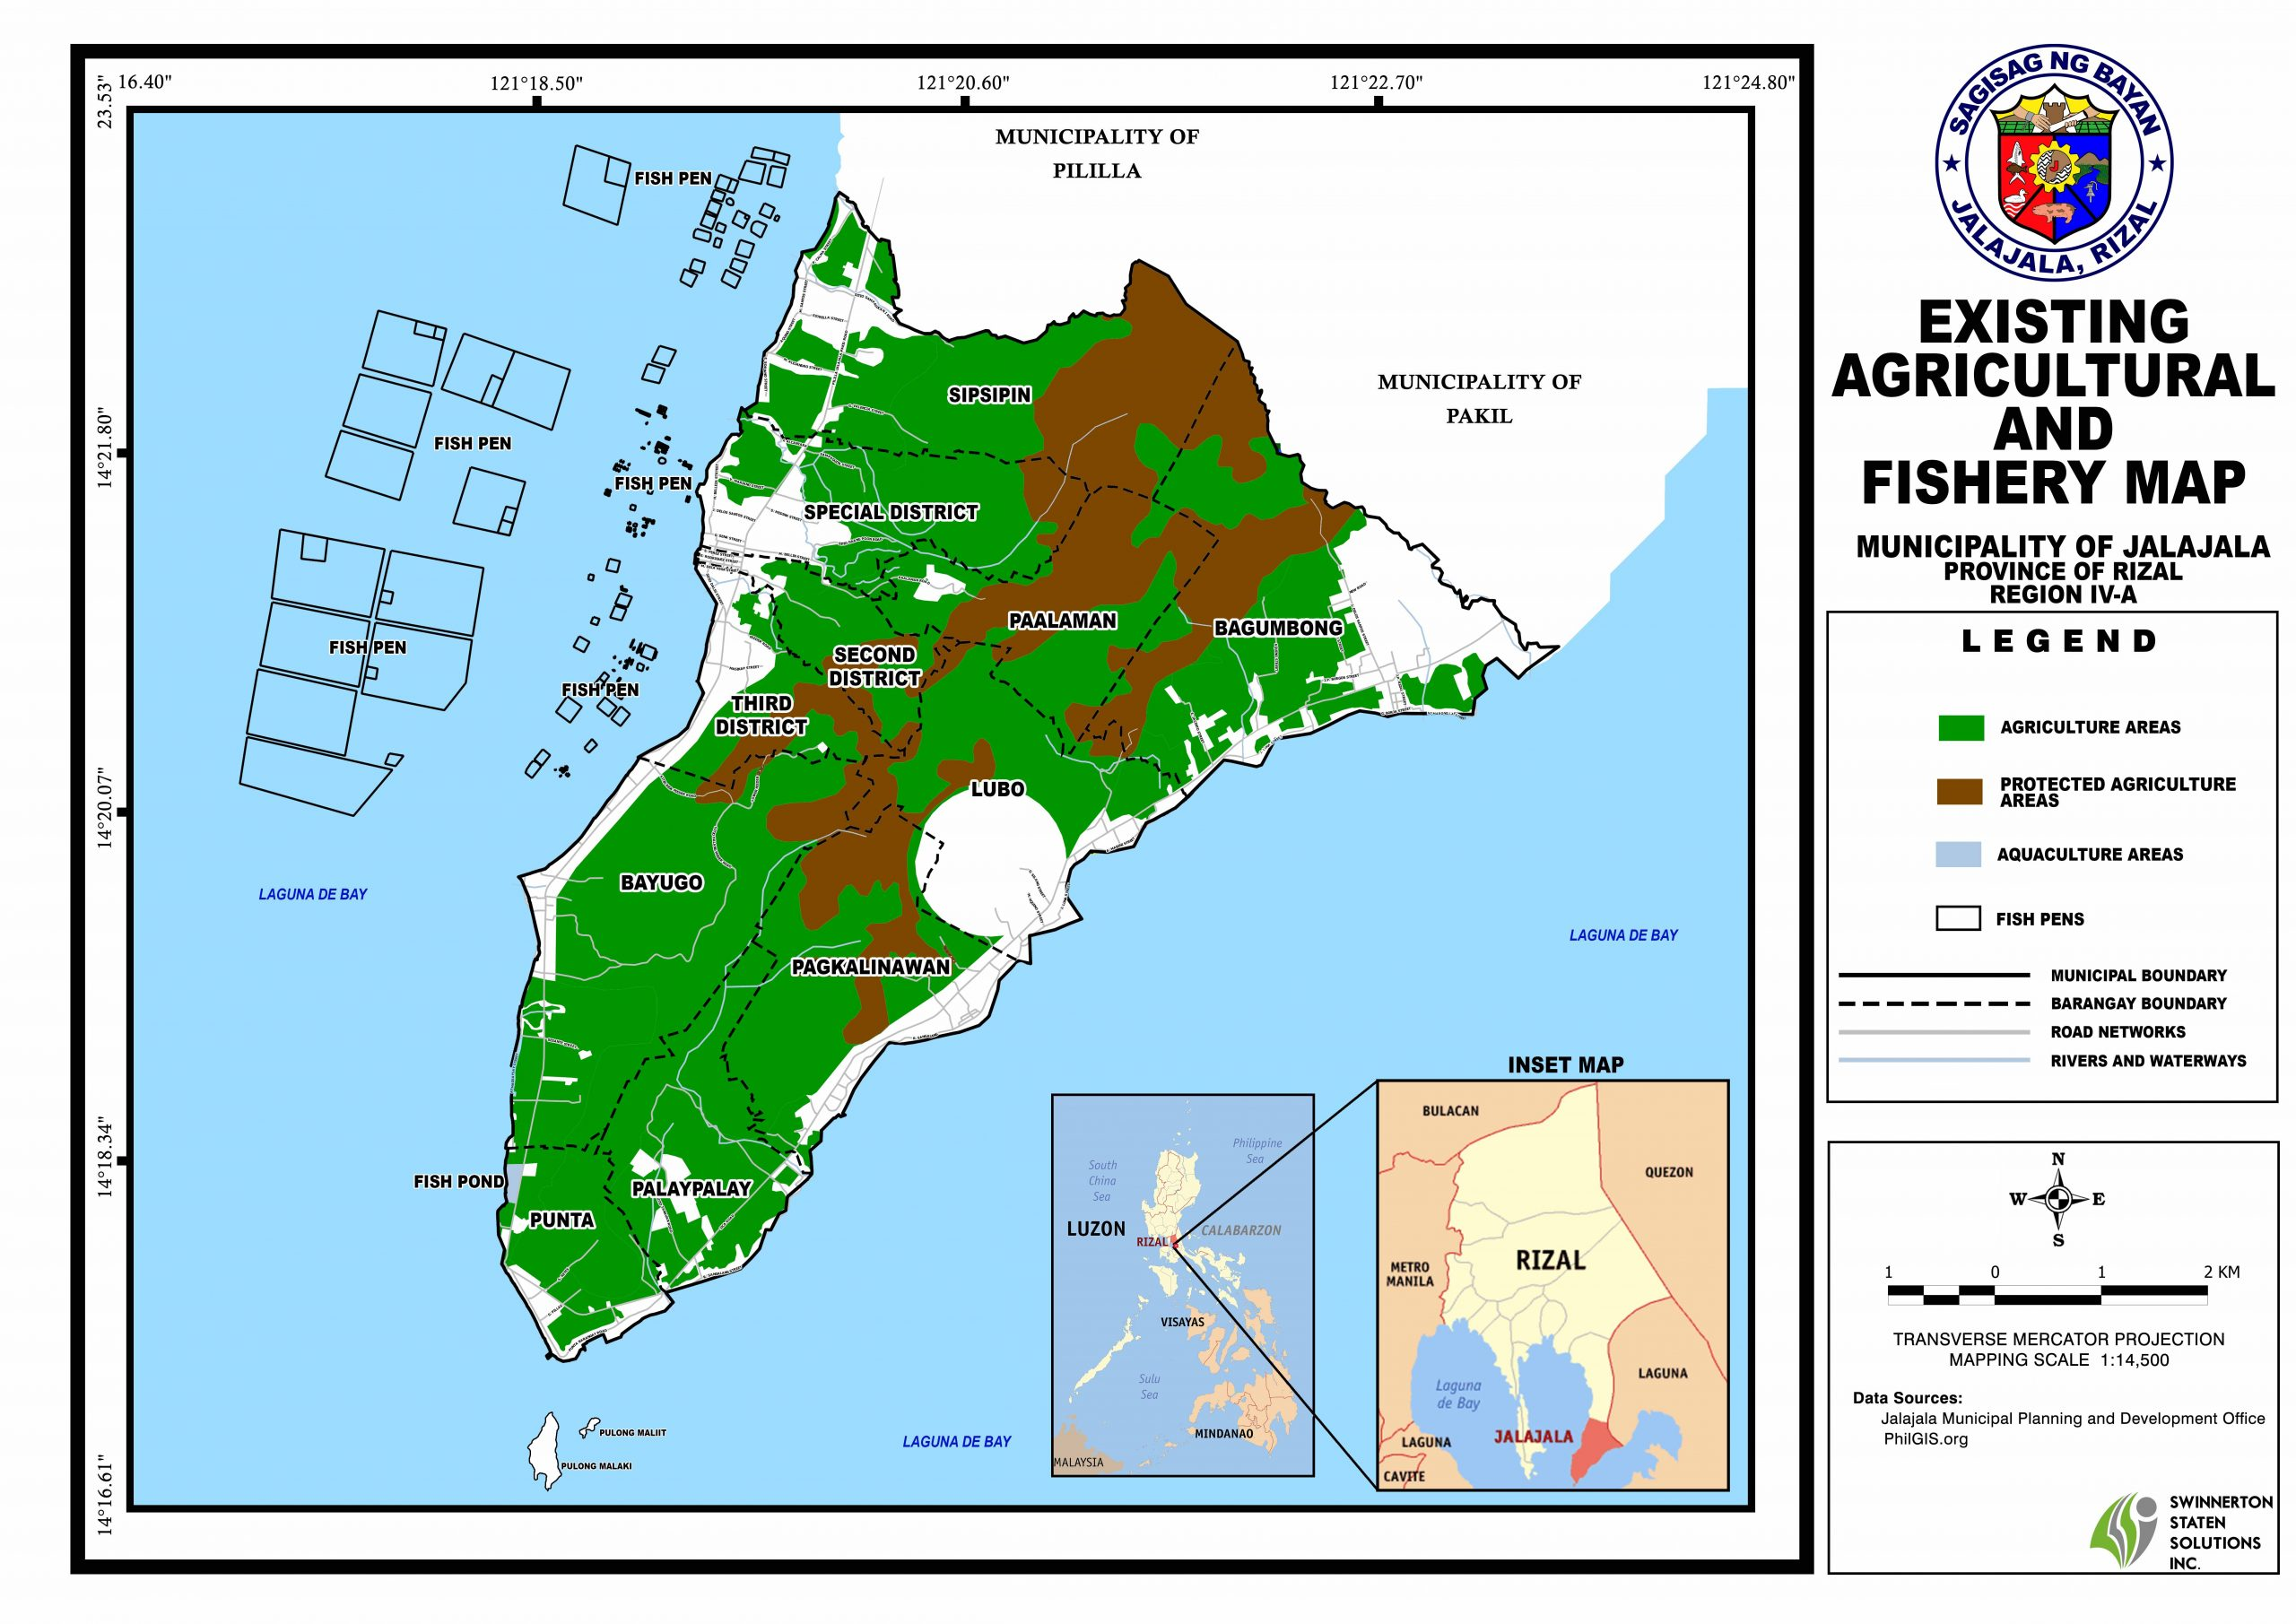 AGRICULTURAL & FISHERY MAP